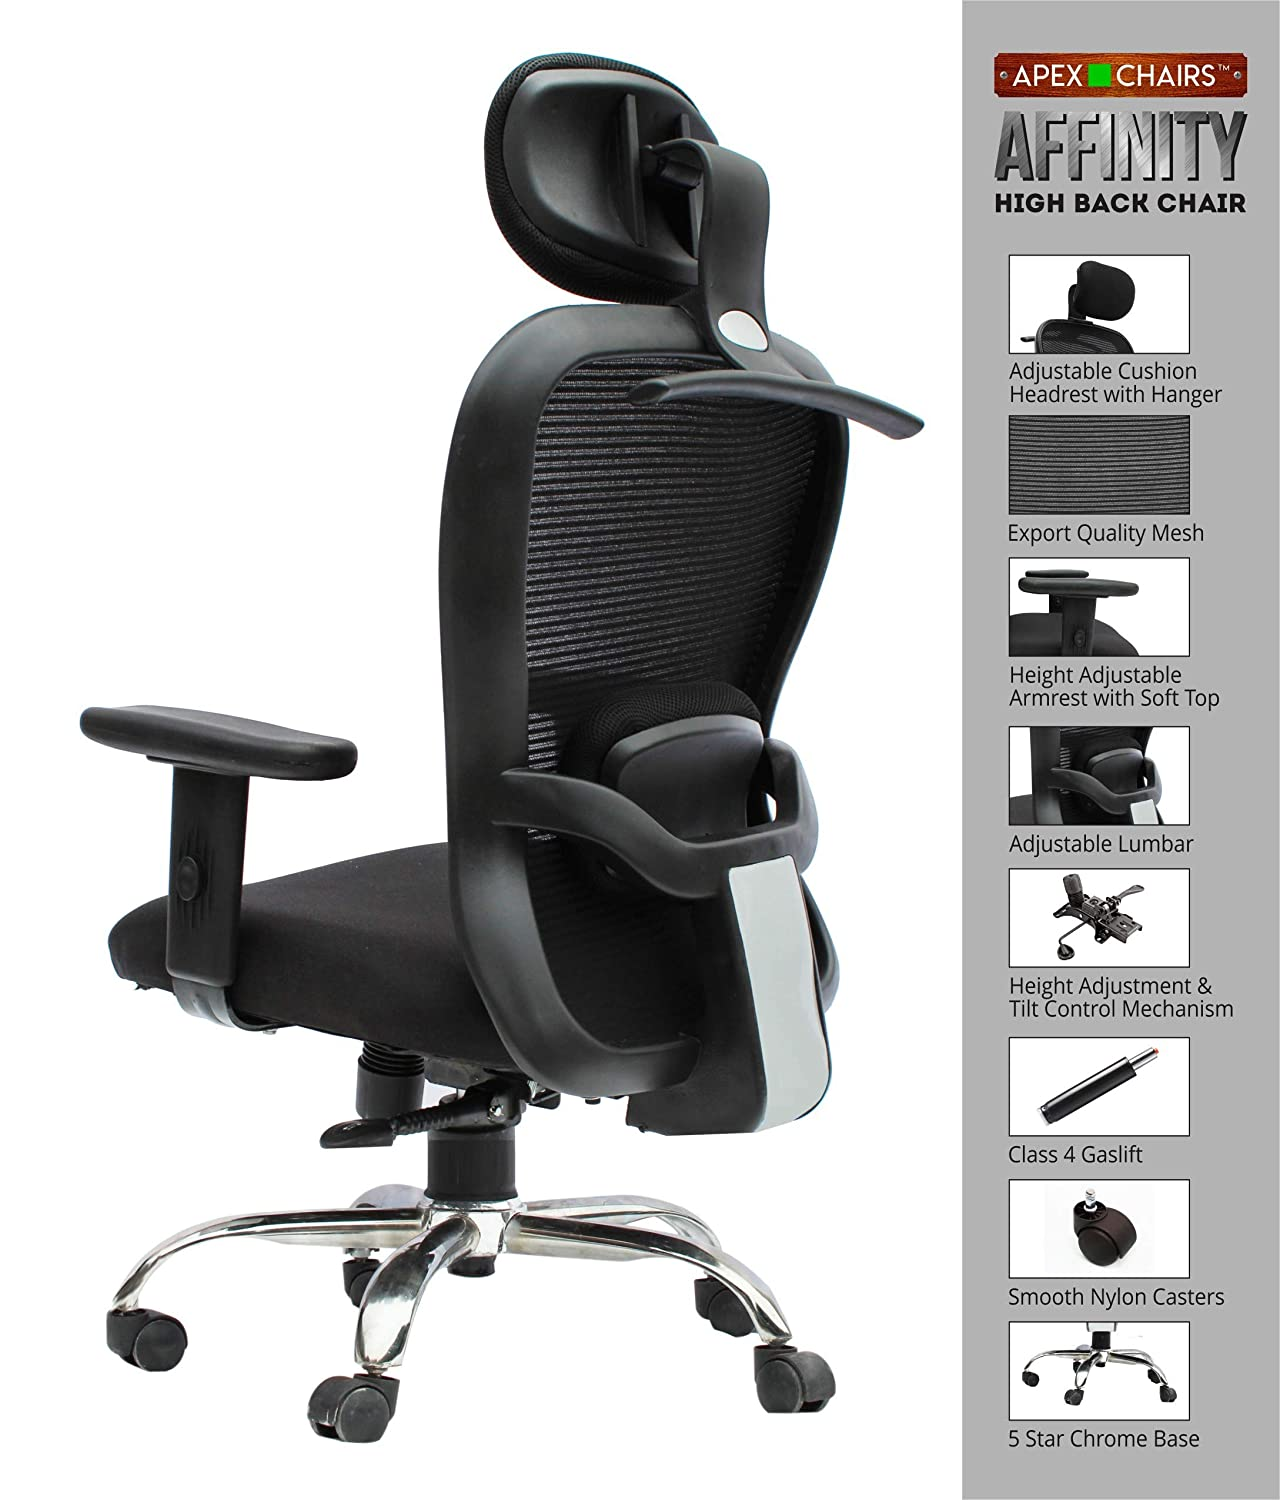 APEX Chairs Affinity Chrome Base HIGH Back Office Chair